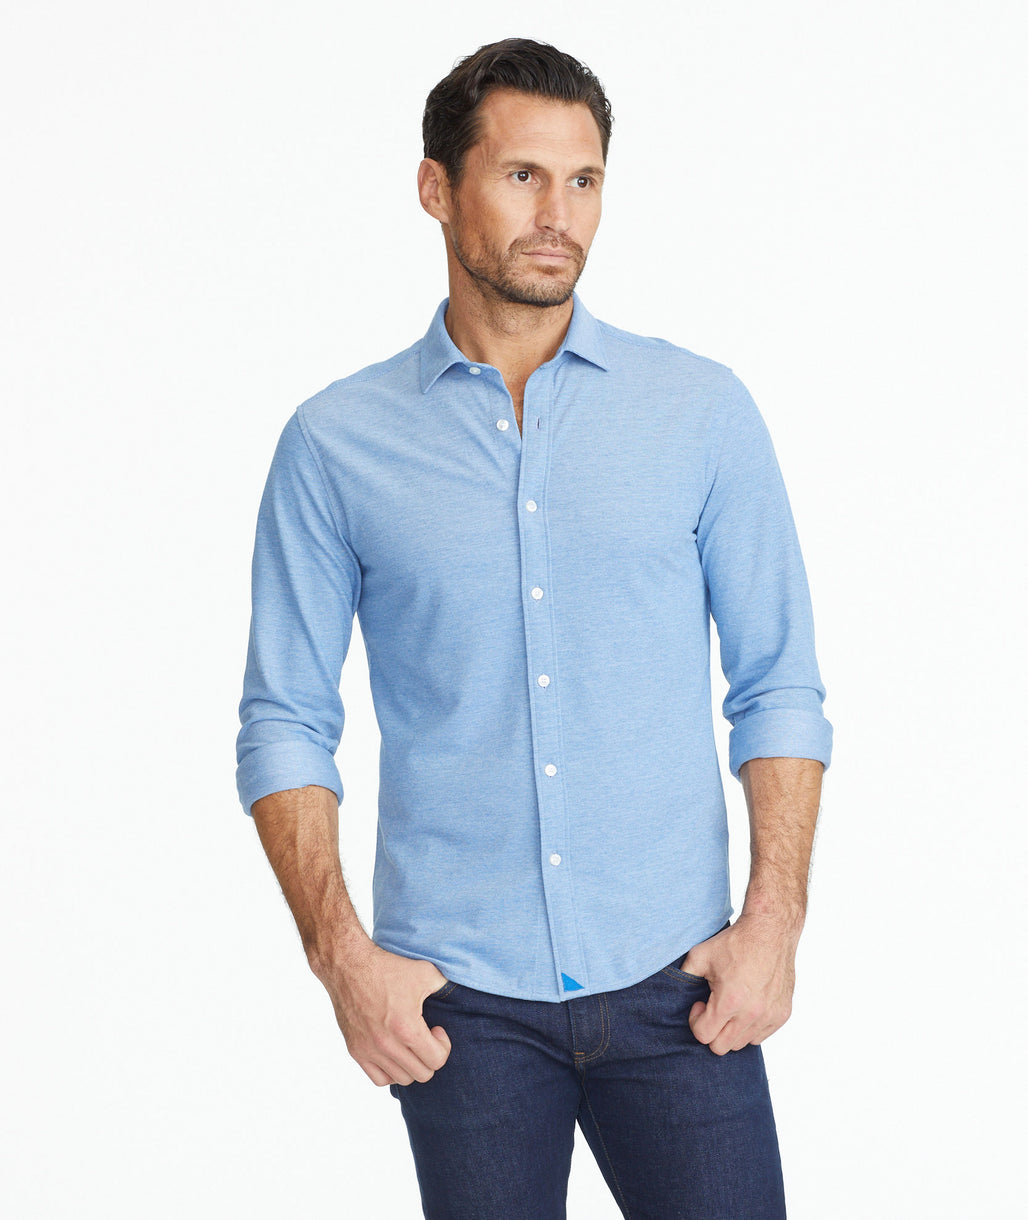 Model wearing a Sea Blue Pique Polo Hybrid Shirt